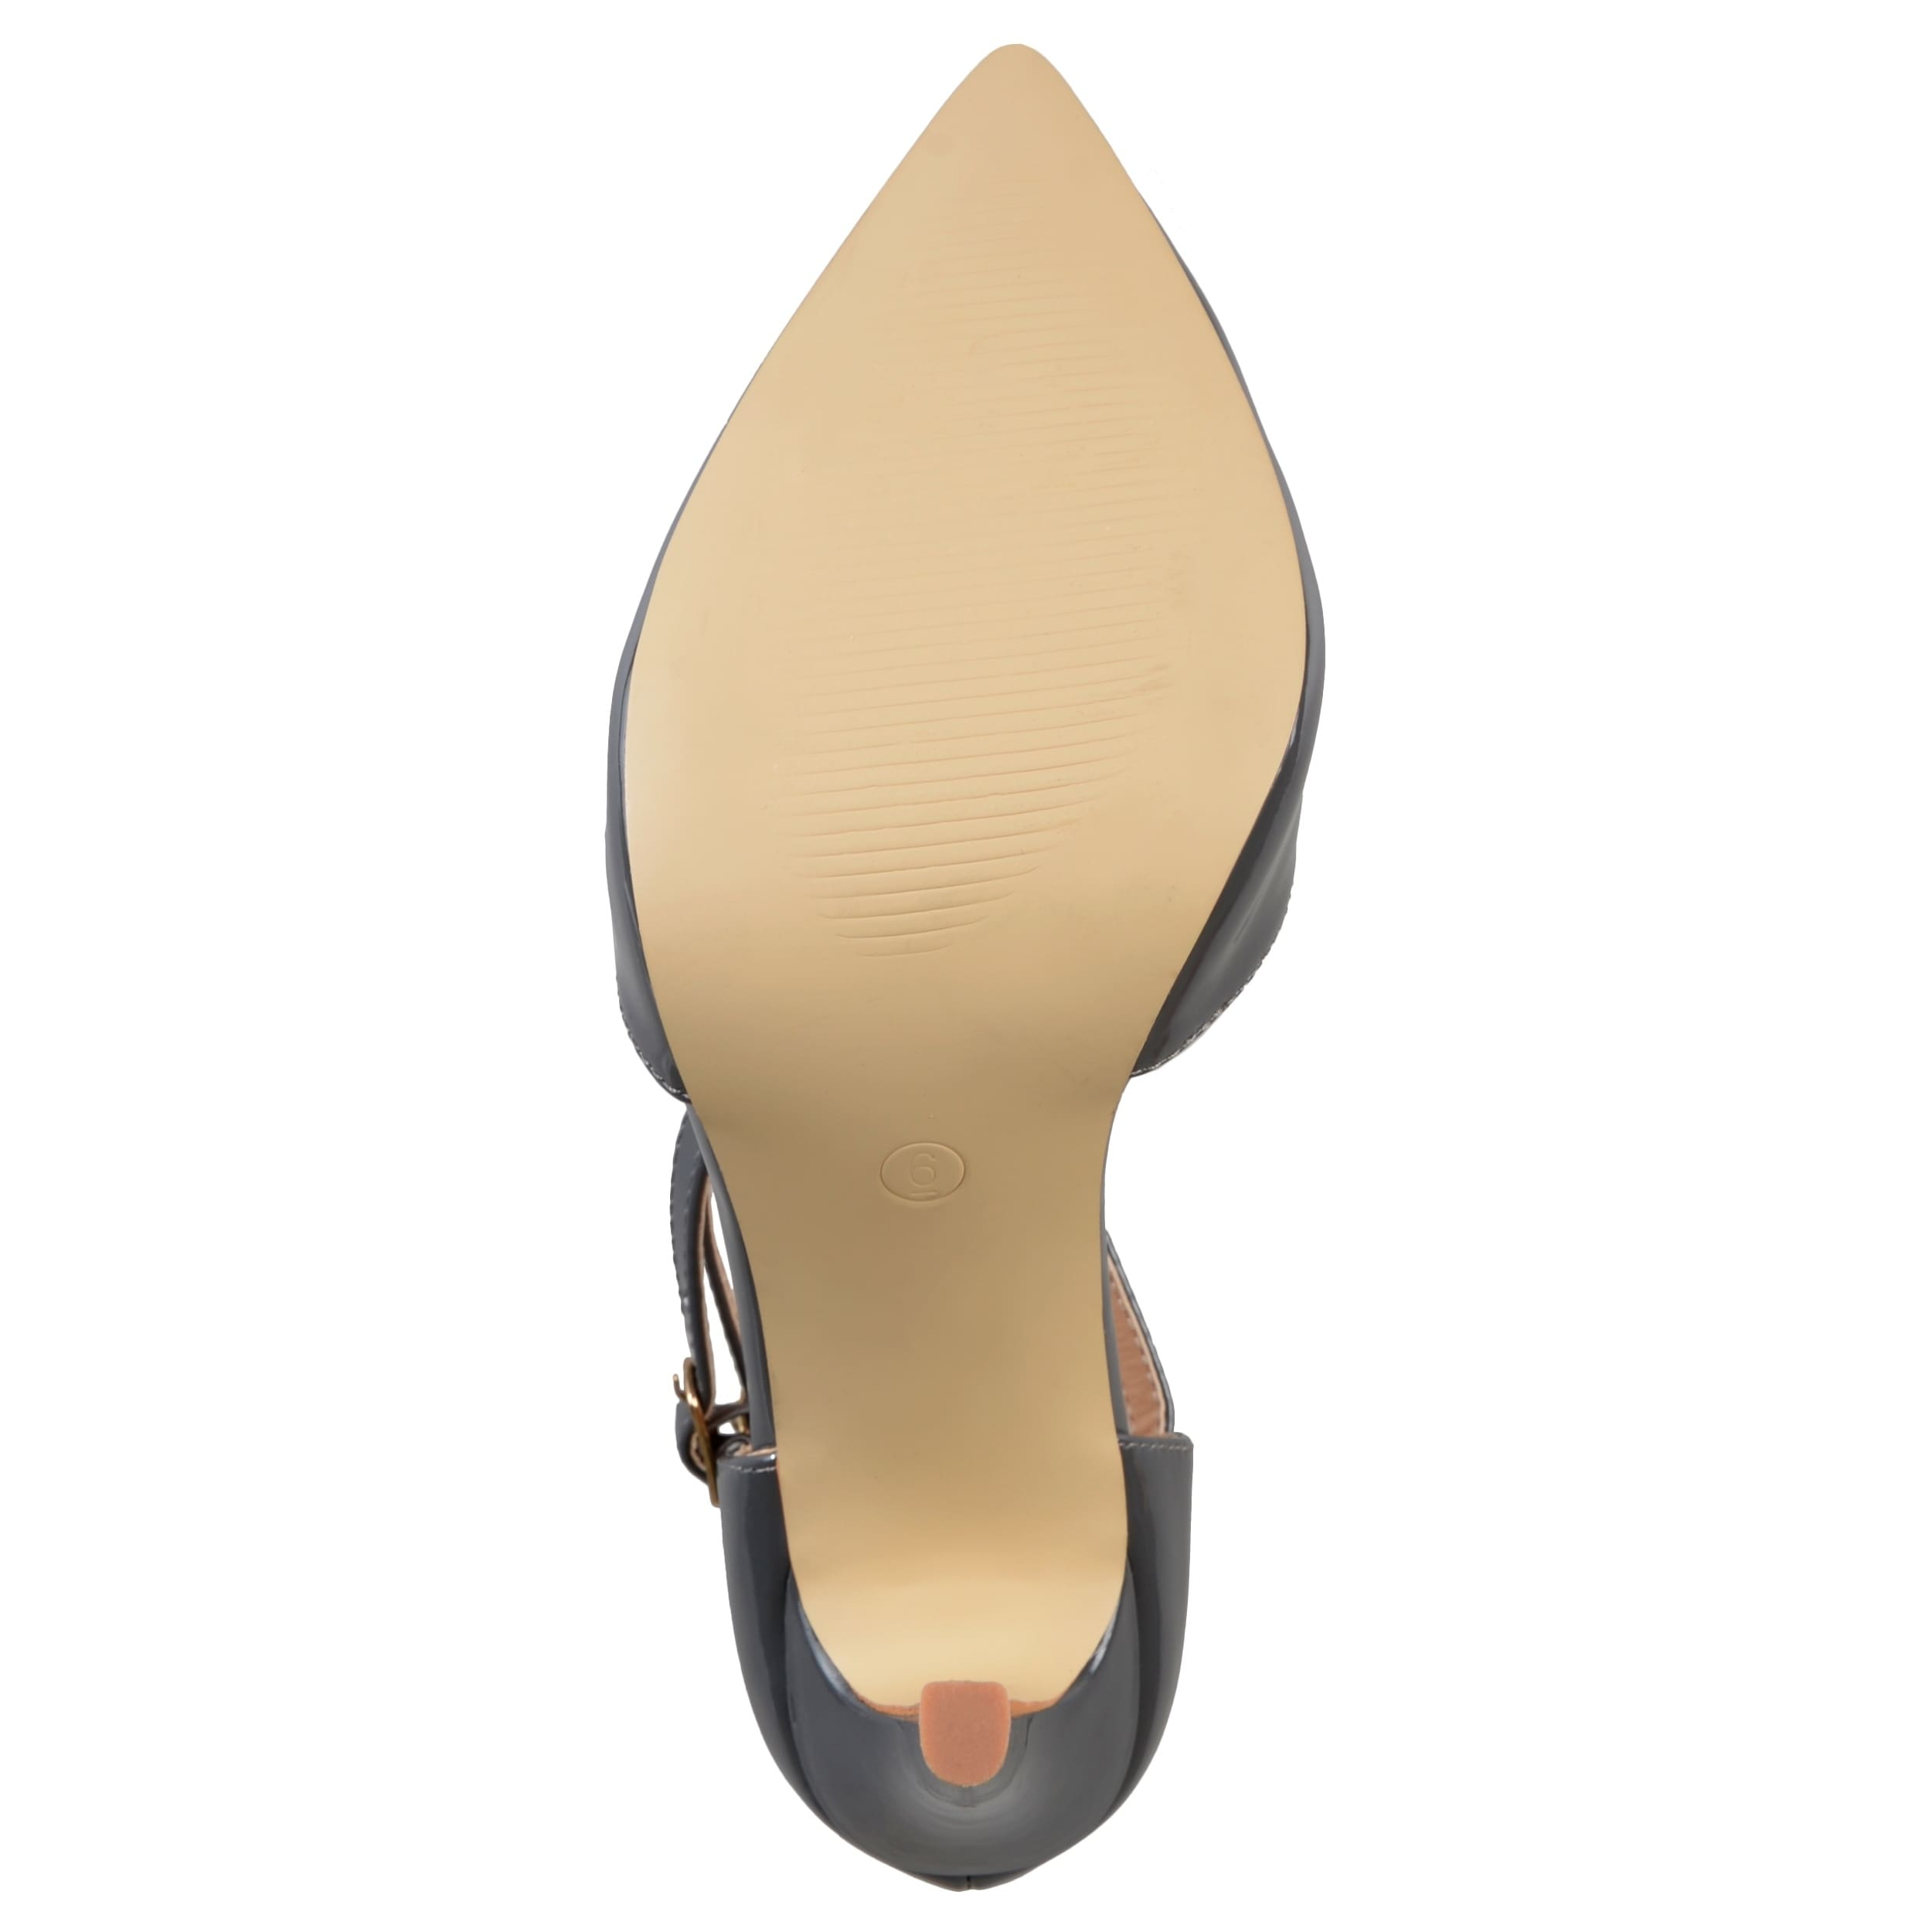 e4a4cbbb5a3e Shop Journee Collection Women s  Tru  Classic T-strap Pumps - Free Shipping  On Orders Over  45 - Overstock - 11105390